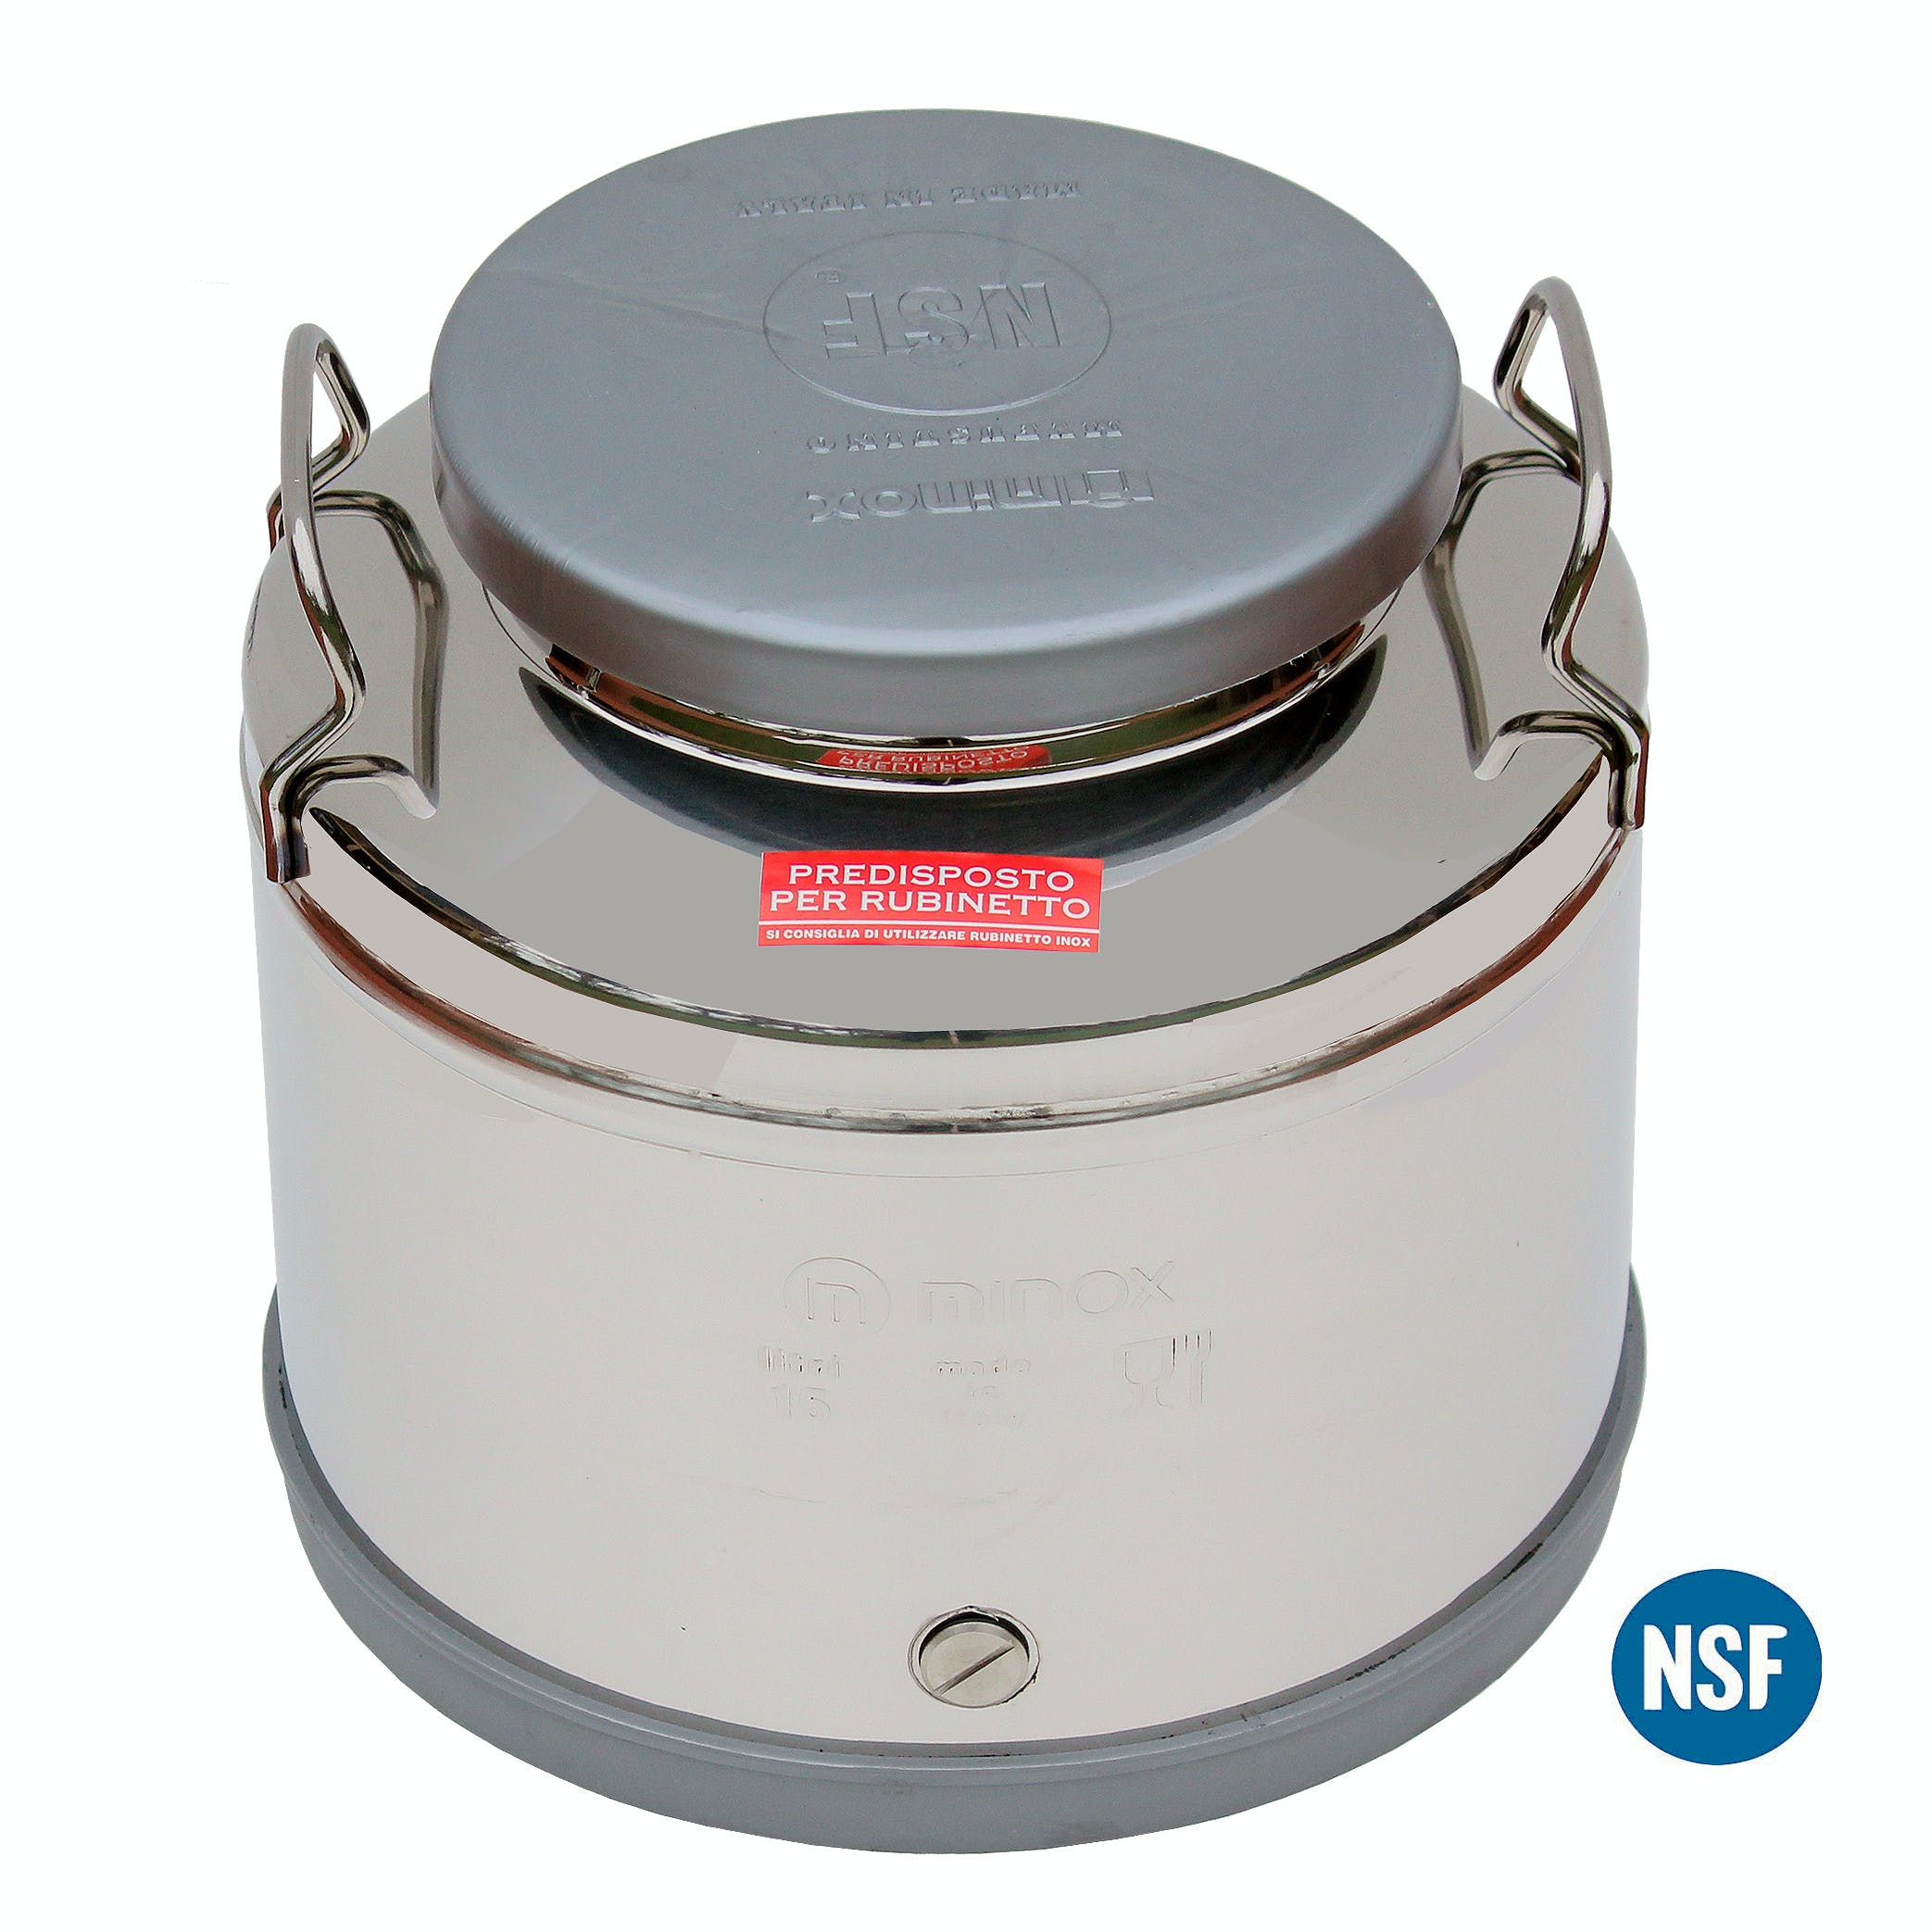 Italian Made Stainless Steel National Sanitary Foundation (NSF) Certified Fusti-15 Liters Steel fusto sold by M5 Corporation